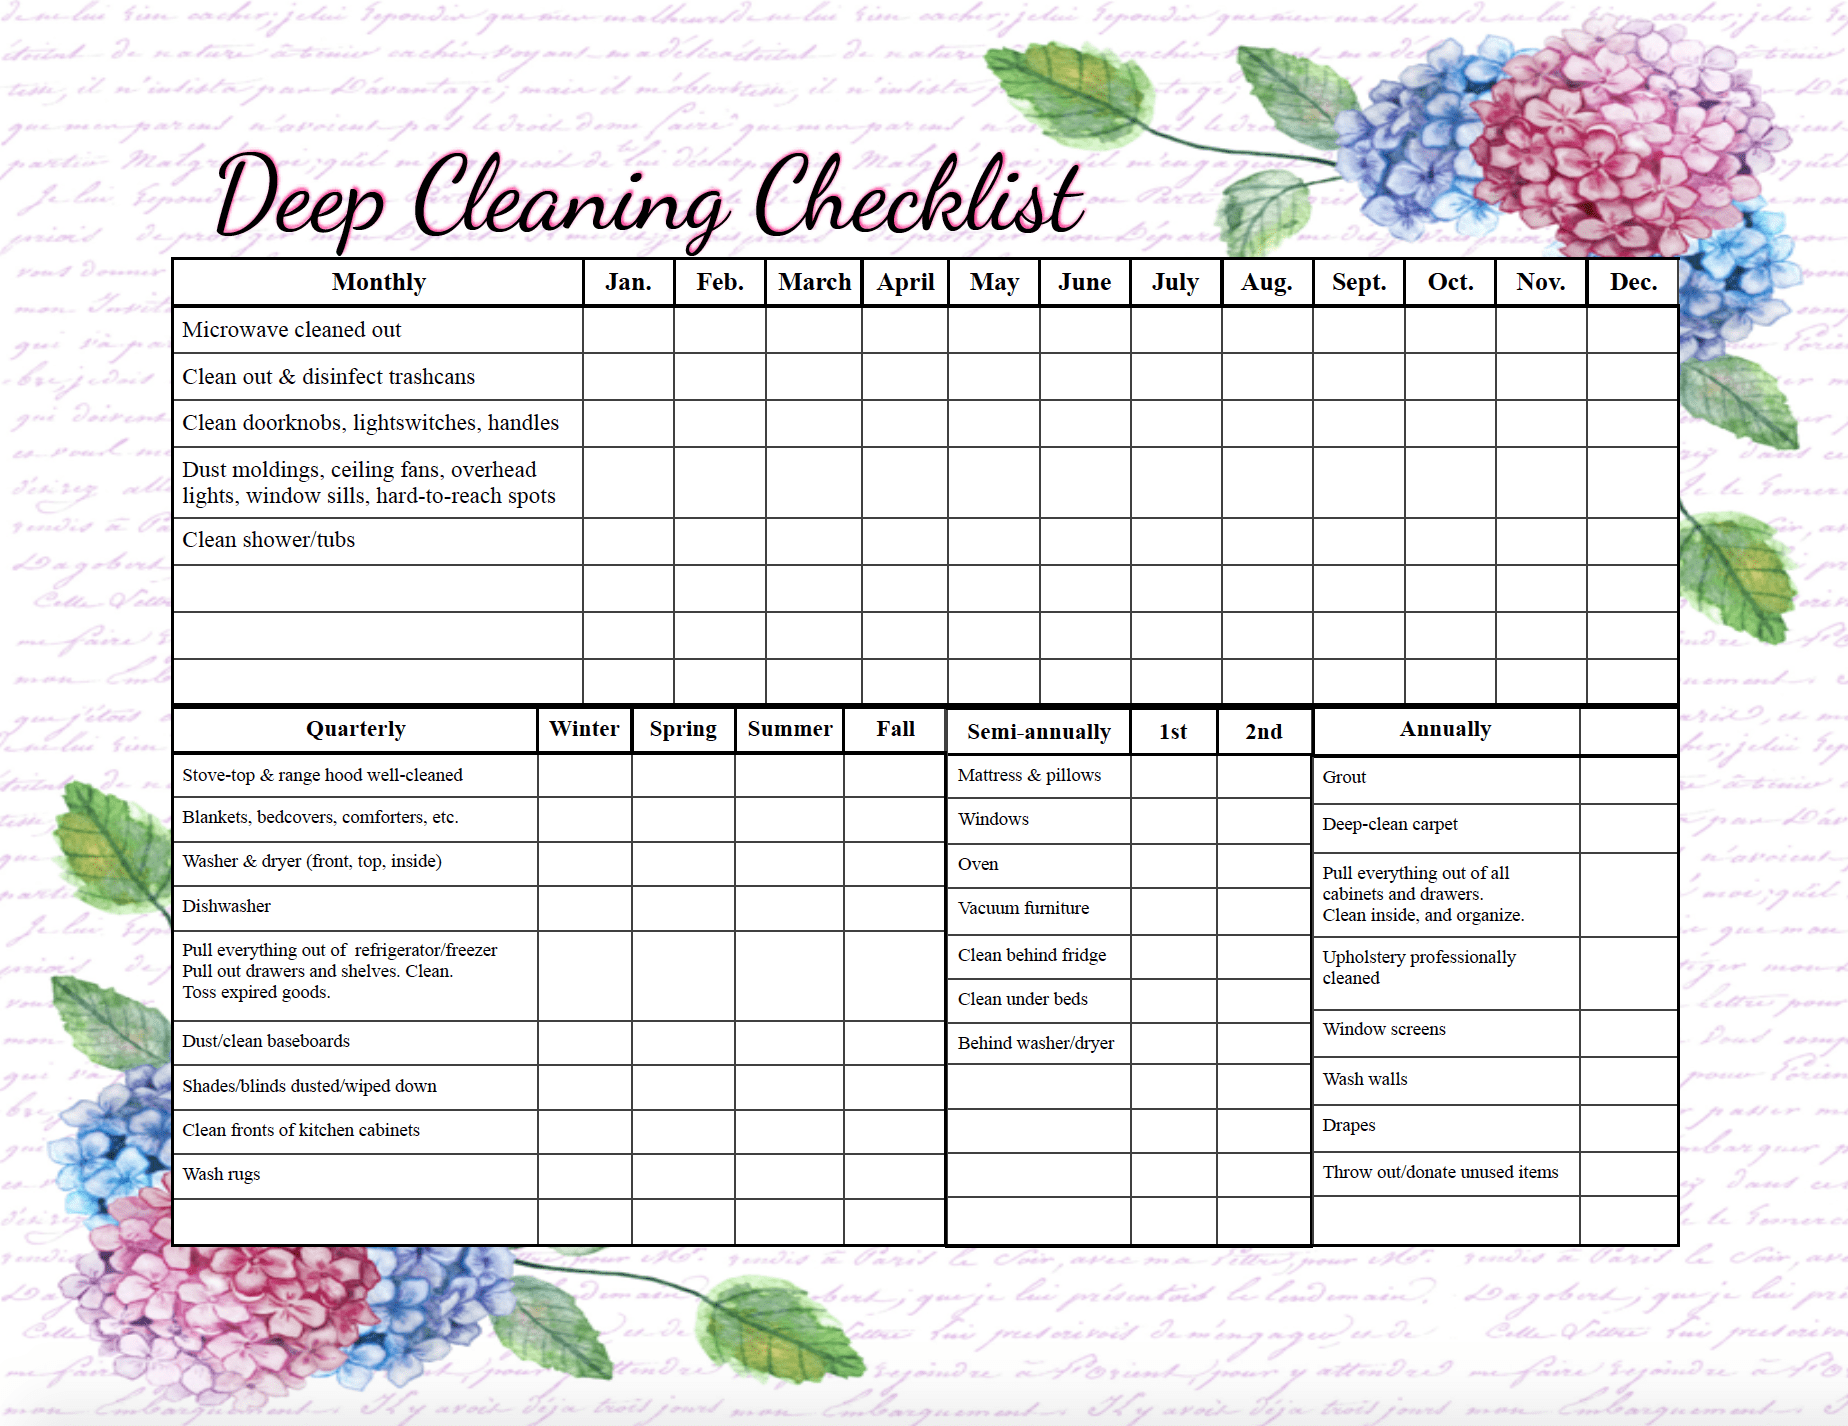 Pre-filled out deep-cleaning checklist. Free printable cleaning checklists. Pre-filled and blanks. Regular & deep-cleaning. Great for kids' chores!